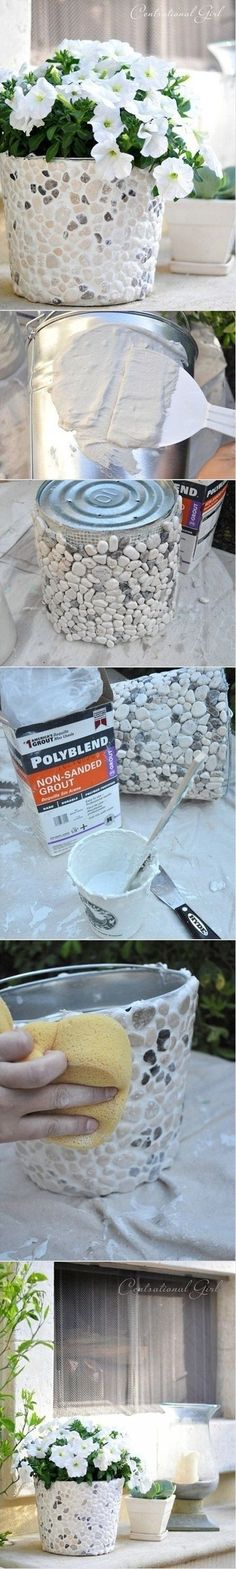 diy flowerpot--why use a galvanized bucket? Will this stick to one of those plastic pots lying around? hummmm